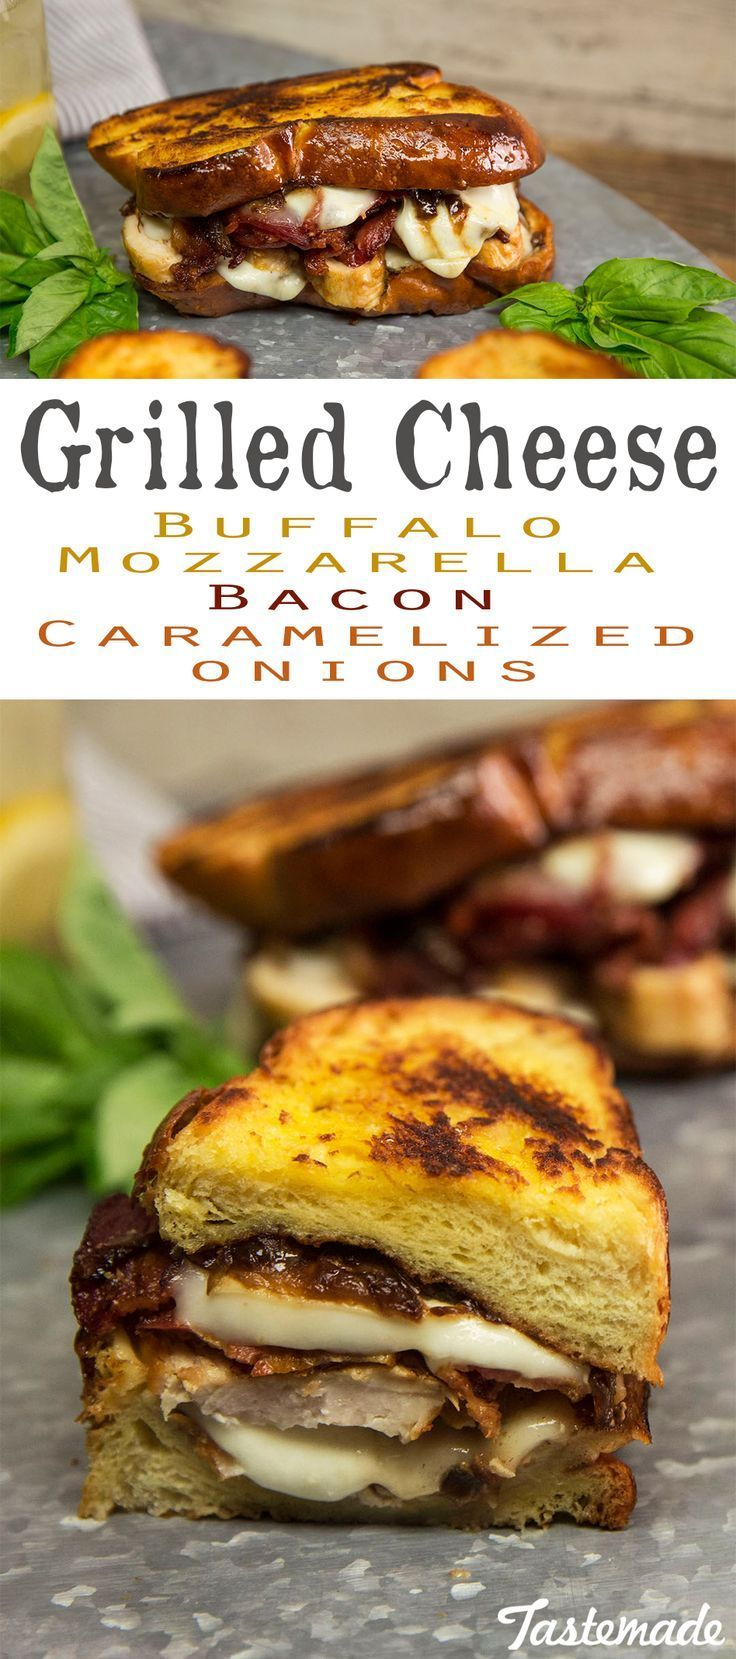 Elevate Your Grilled Cheese Game With Bacon Buffalo Mozzarella And Caramelized Recipes Buffalo Mozzarella Recipes Grilling Recipes